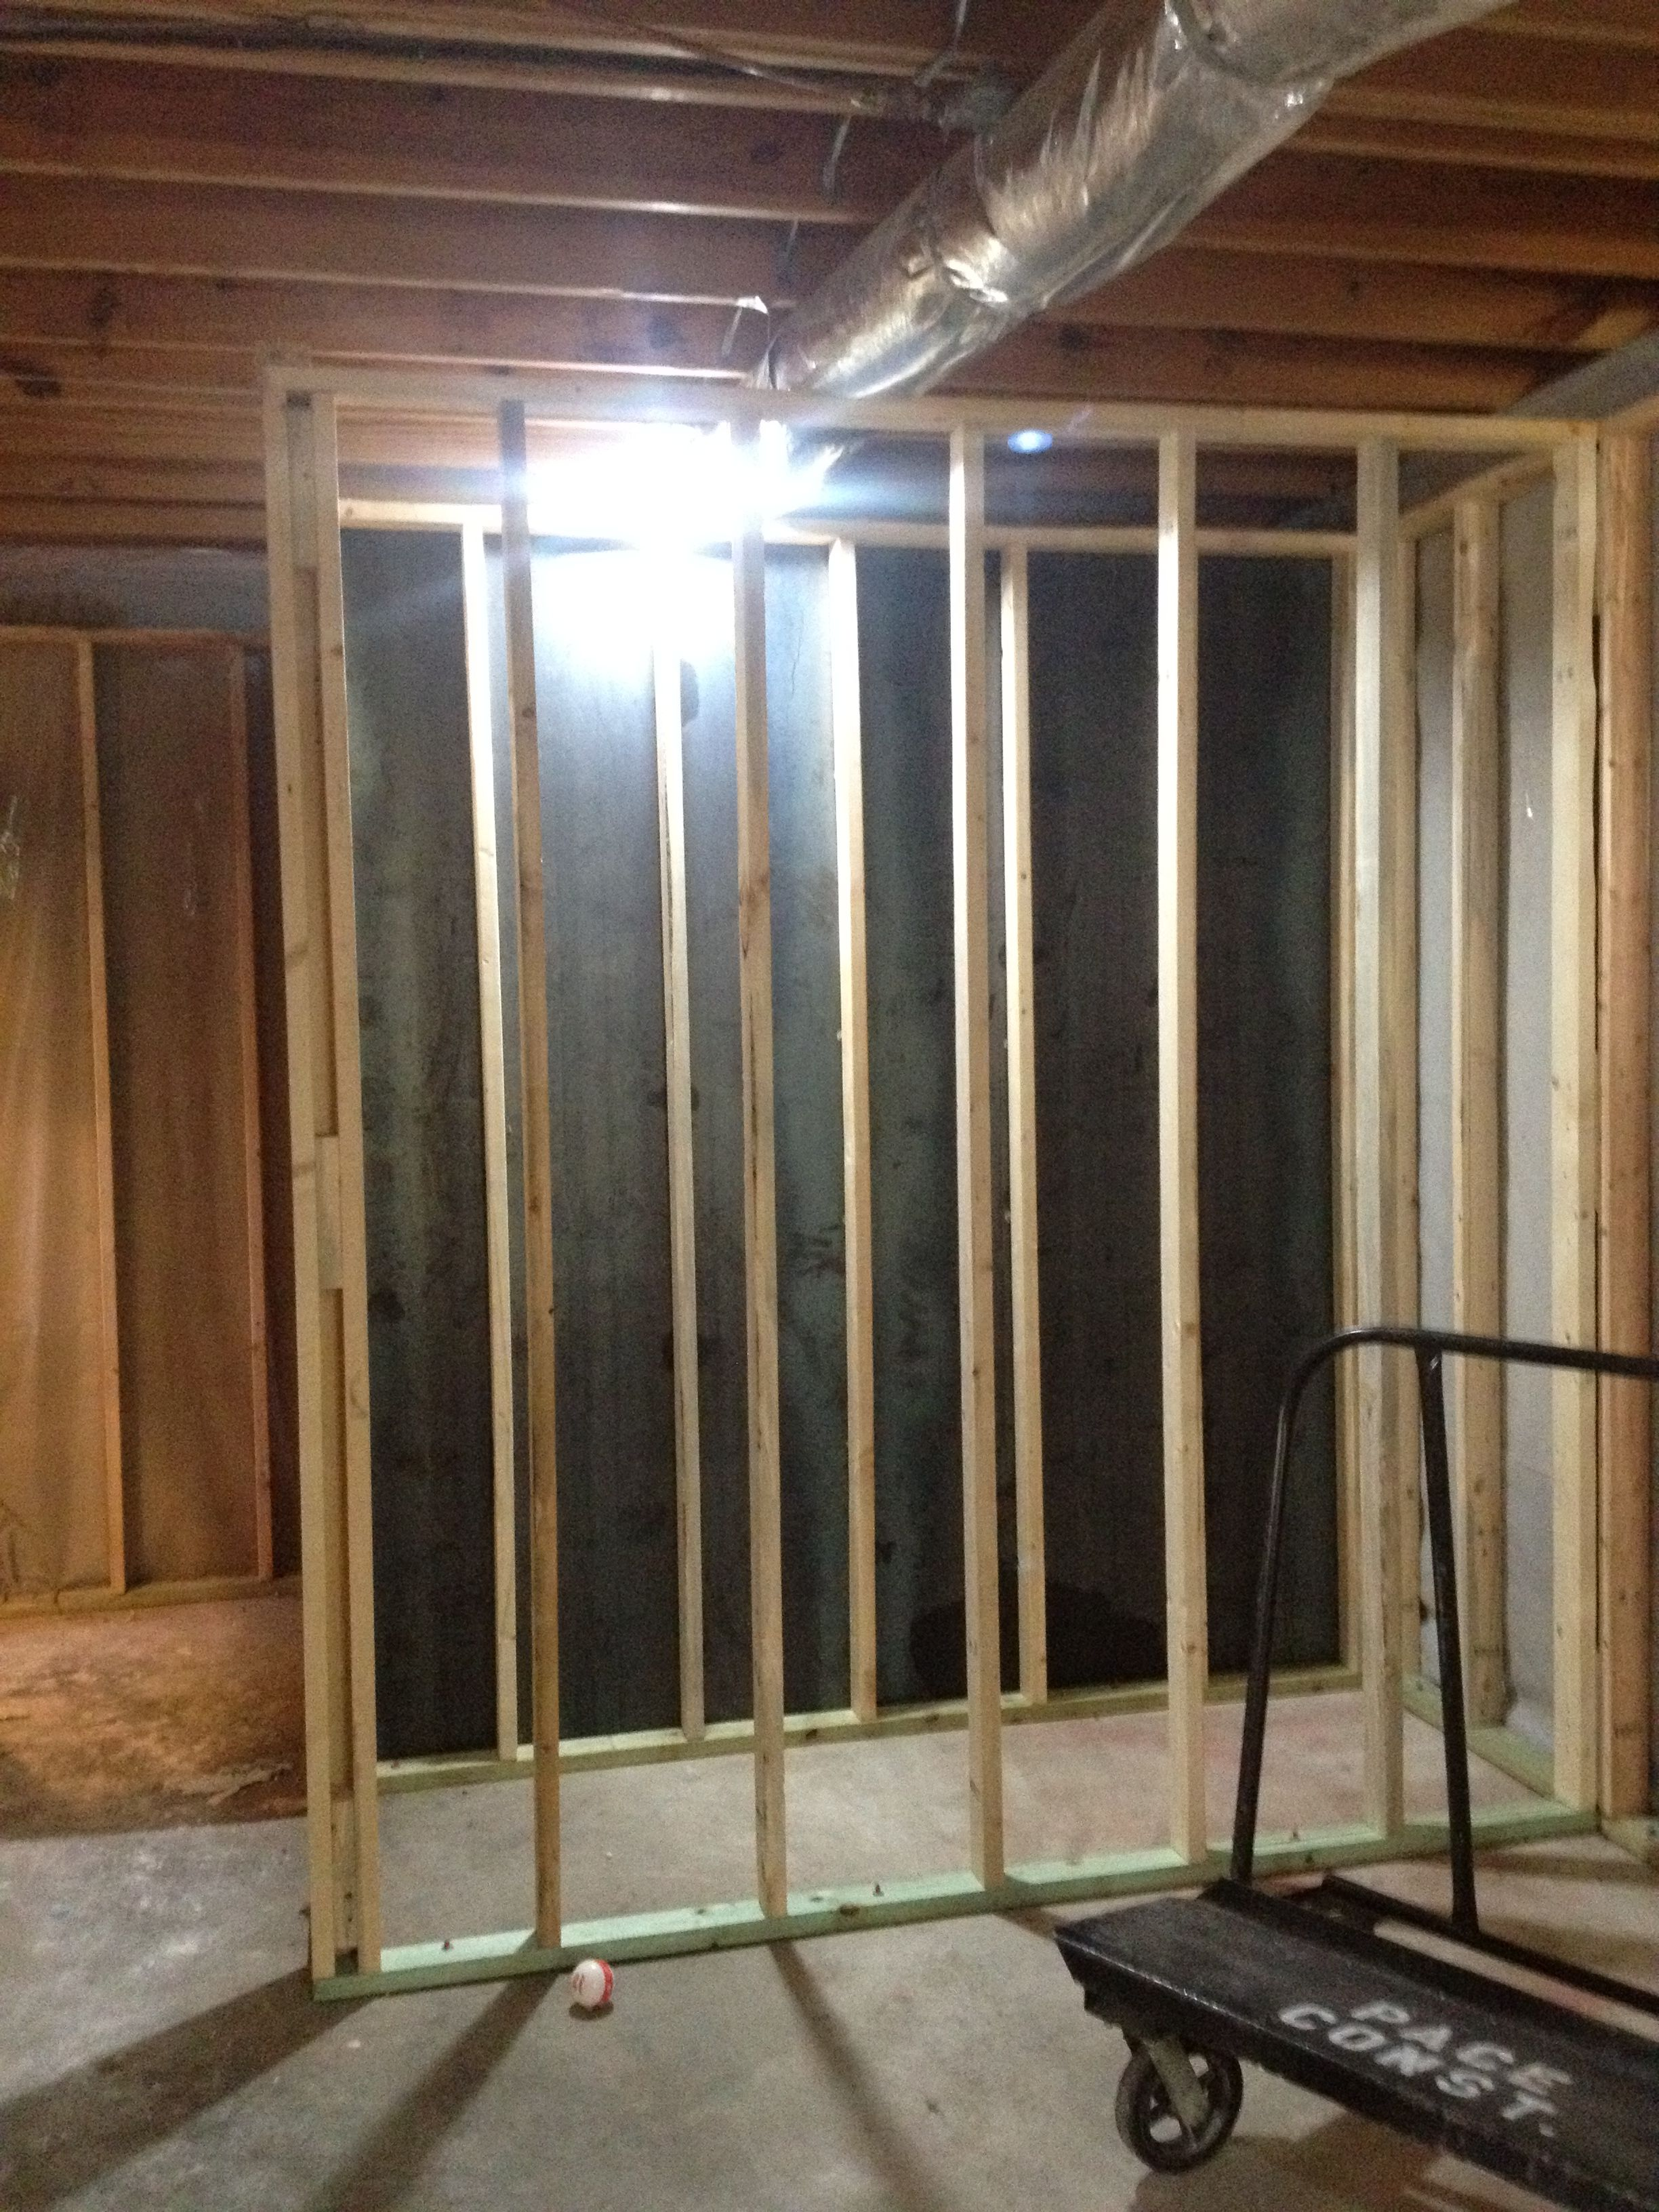 Best Kitchen Gallery: During The Framing Stage The Bathroom Wall Was Reinforced With 1 4 of Shipping Container Storm Shelter on rachelxblog.com